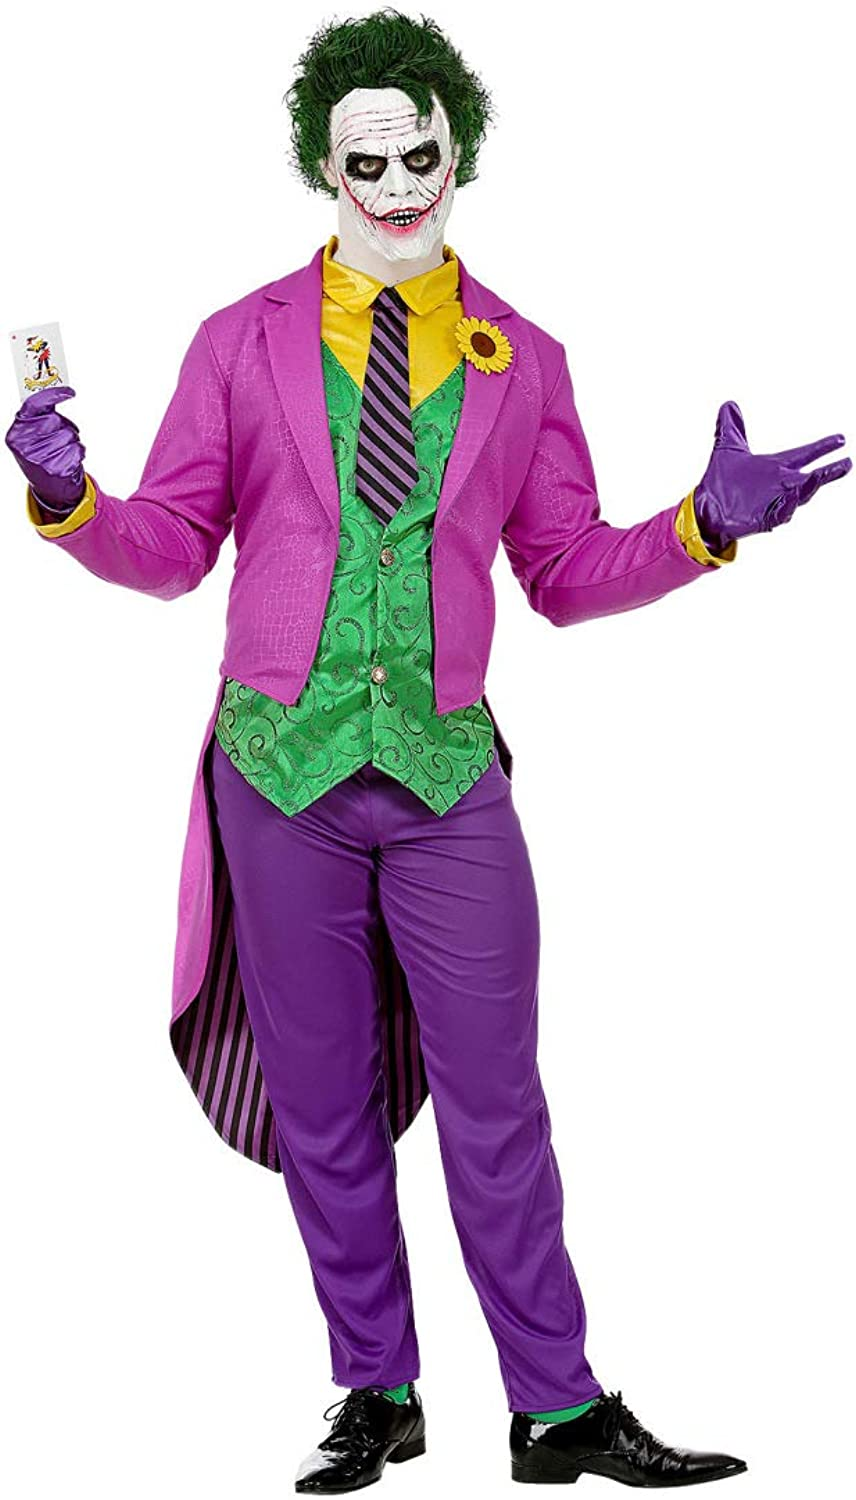 NET TOYS Great Joker Costume for Men   PurpleGreen in size XL (UK 44)   Extravagant Men's Villain Outfit   Perfect for Halloween & Carnival